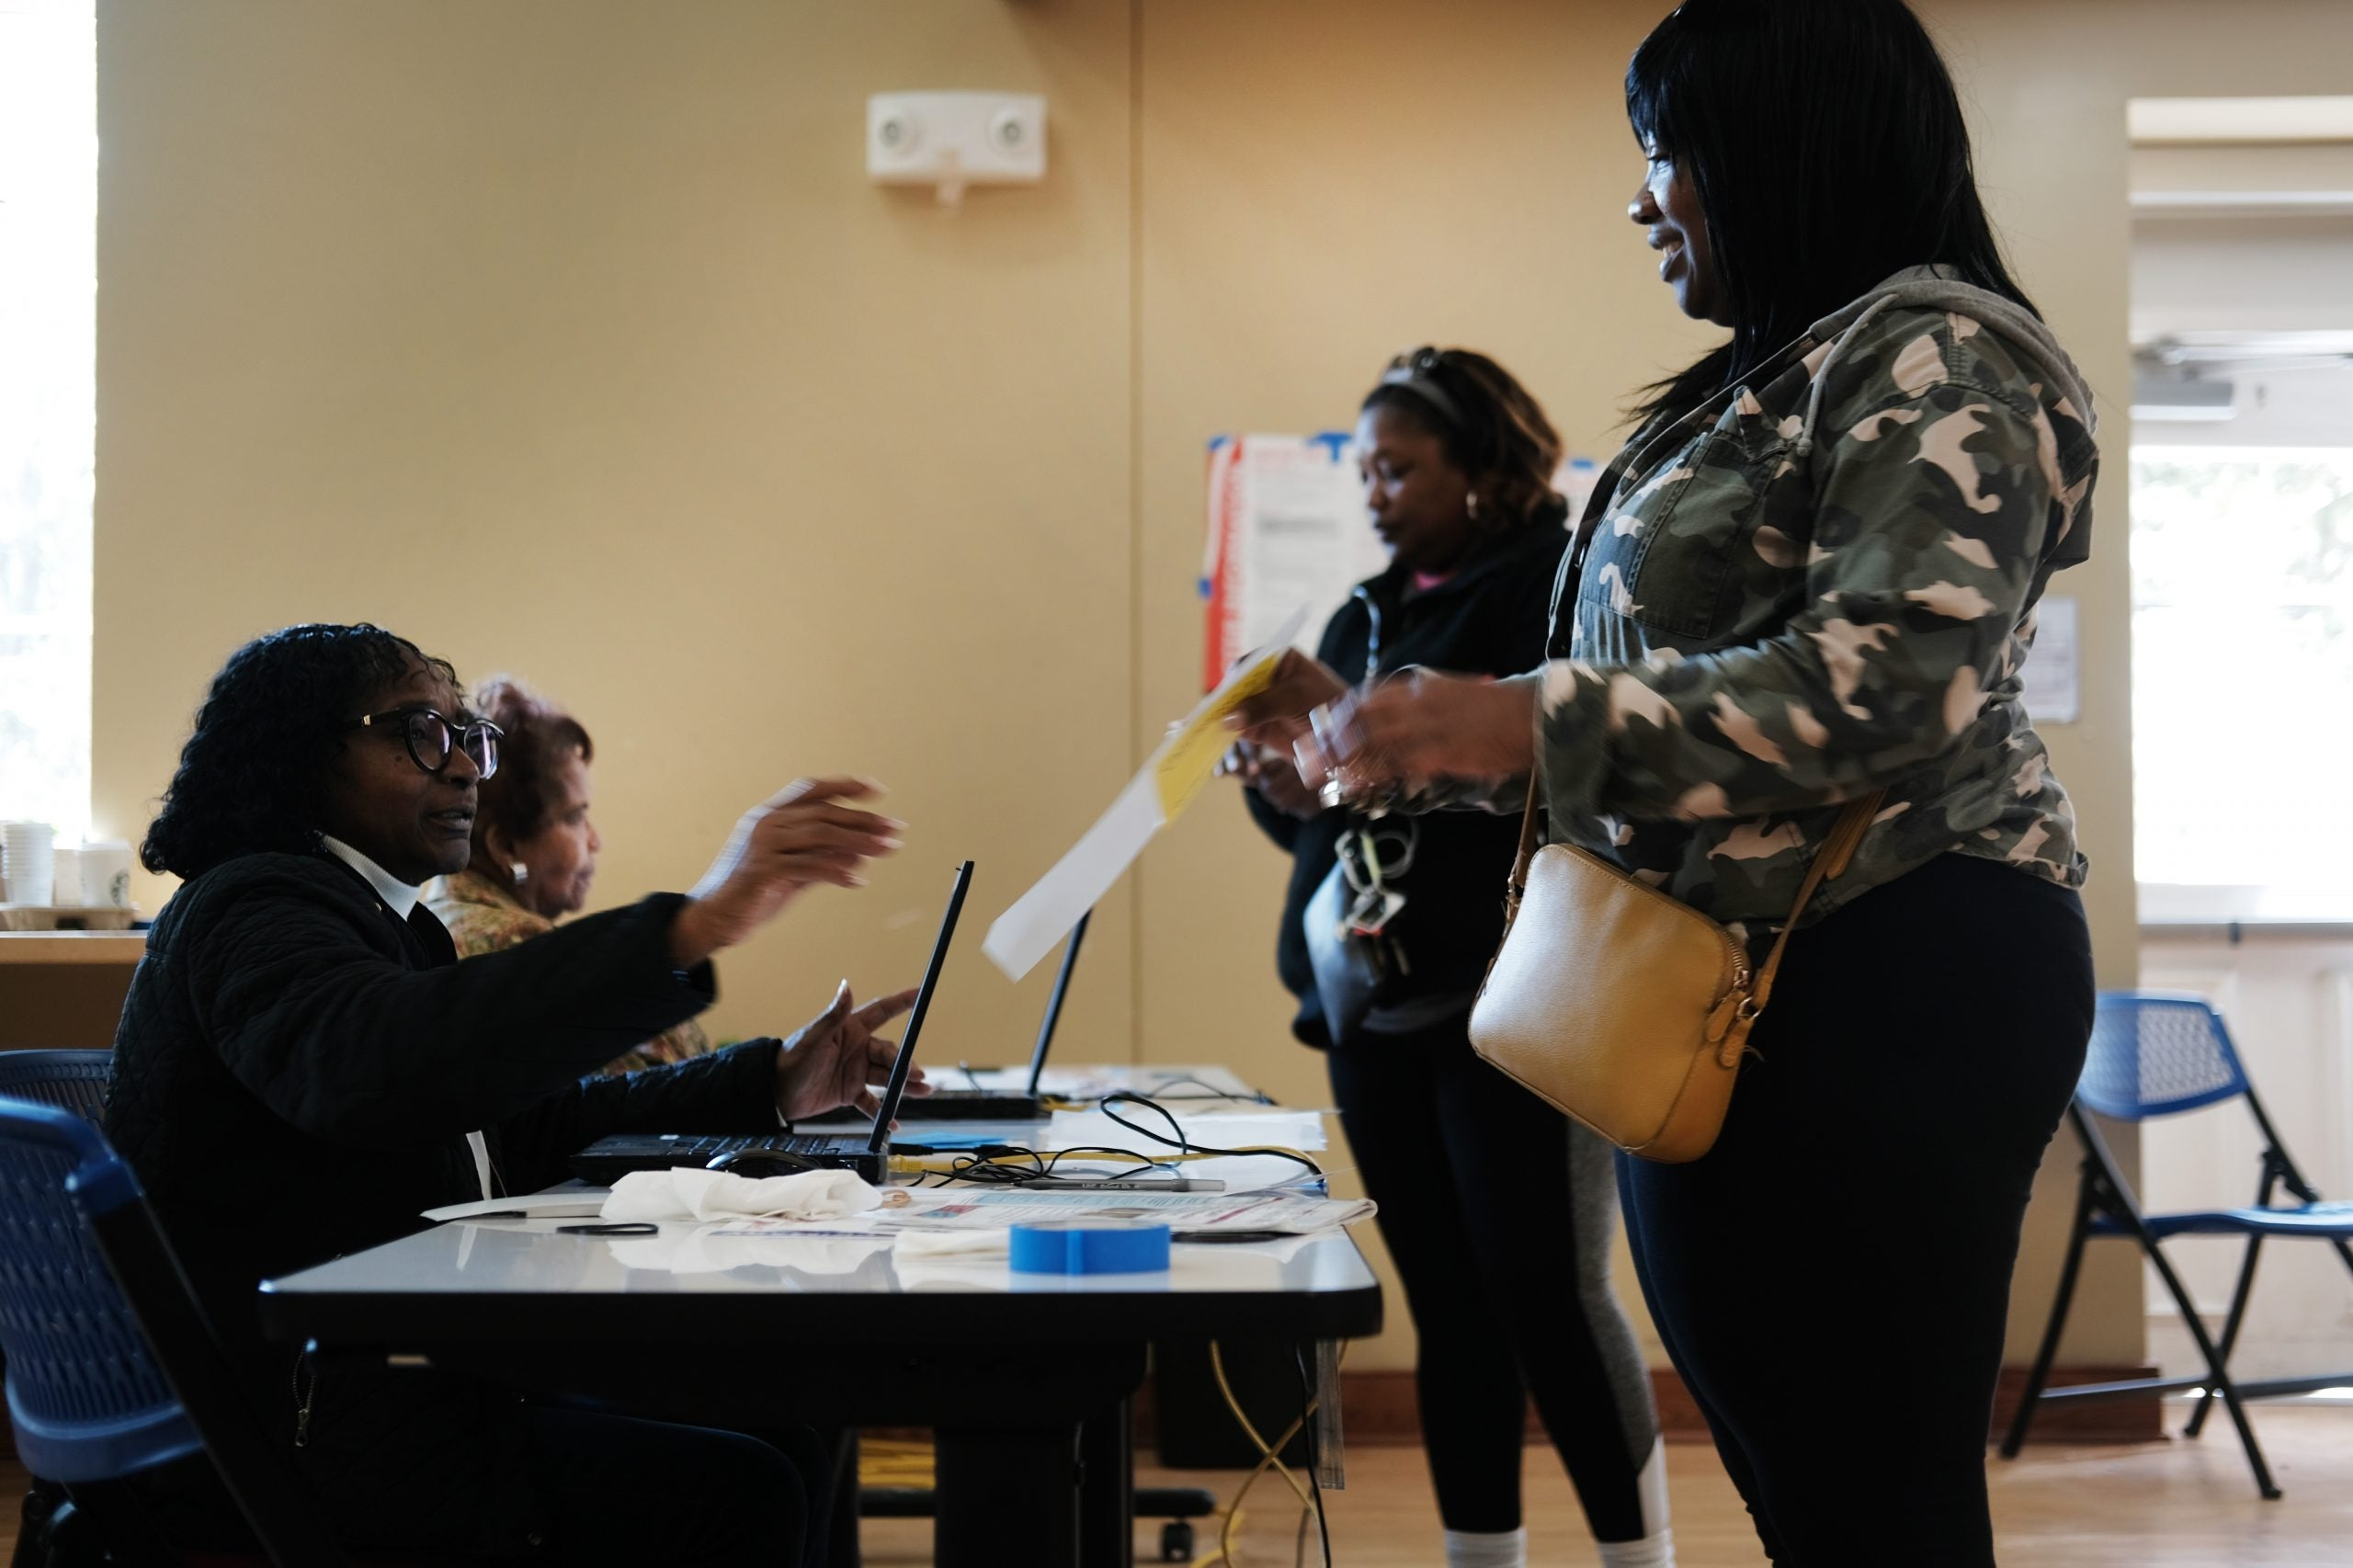 Black voters cast ballots in Feb primary. June 9 primary is proving to be a greater challenge.